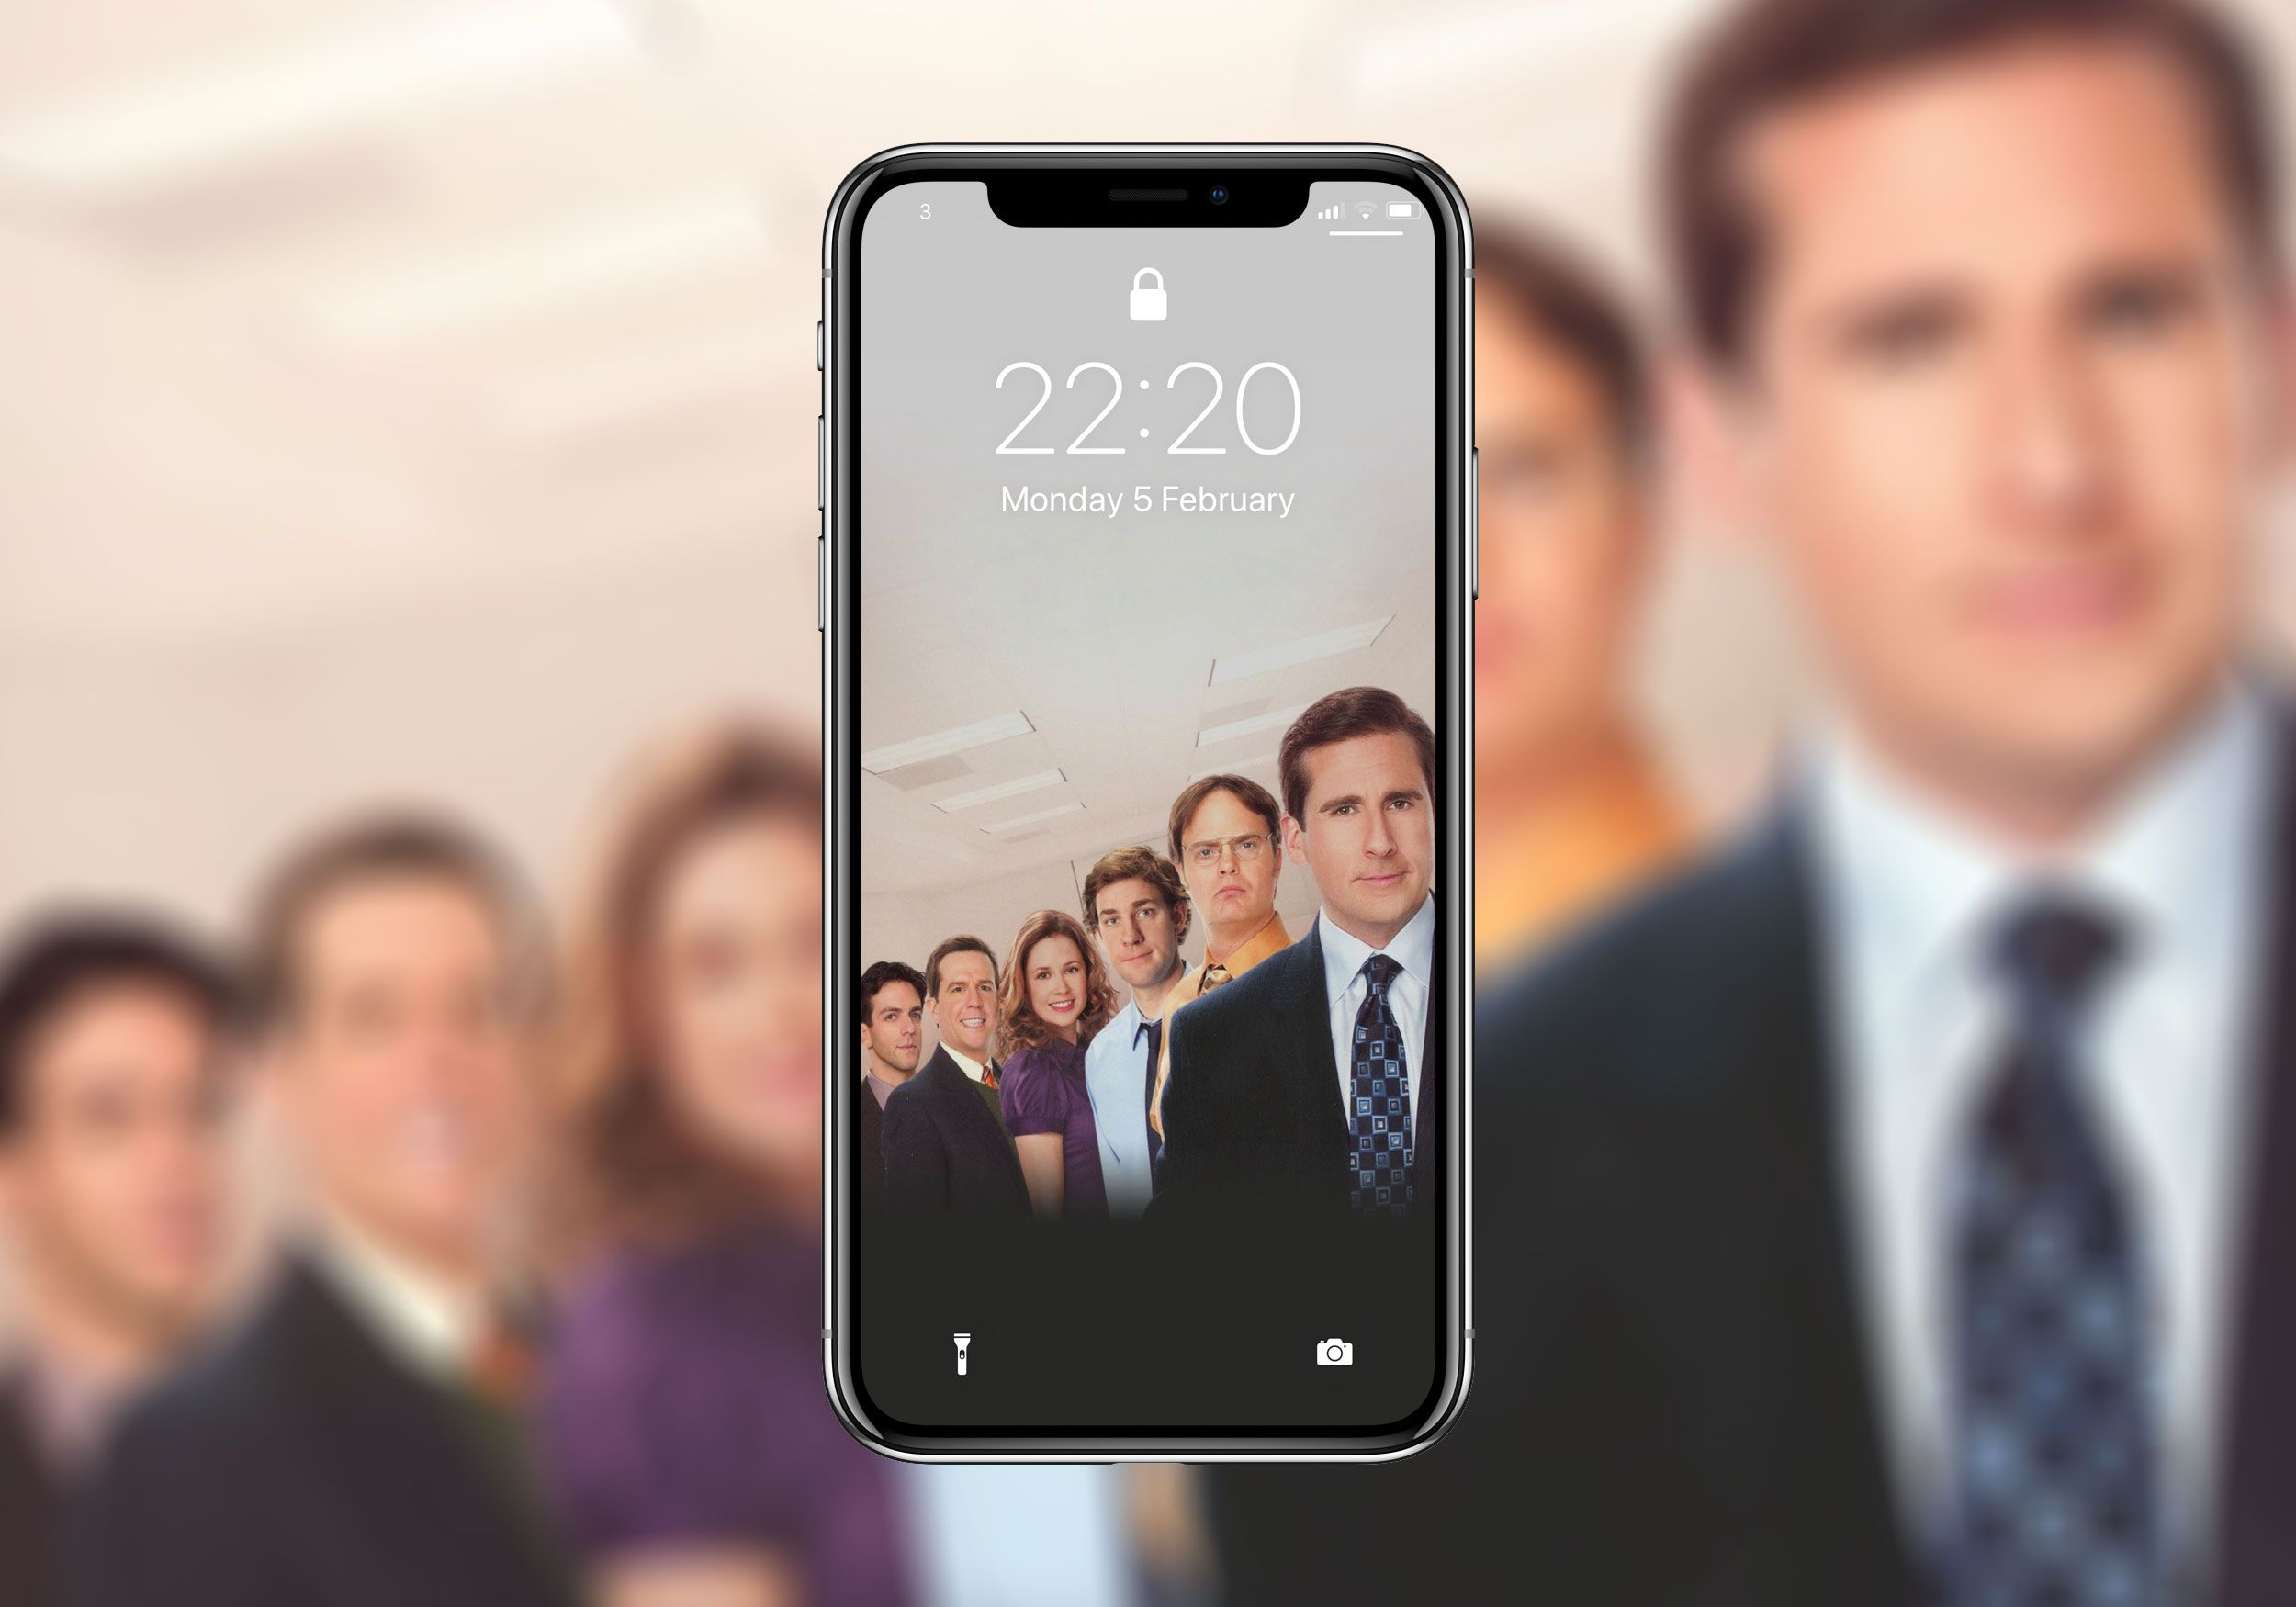 The Office Wallpaper For Iphone X Compatible With Other Devices Office Wallpaper Office Birthday Office Birthday Party